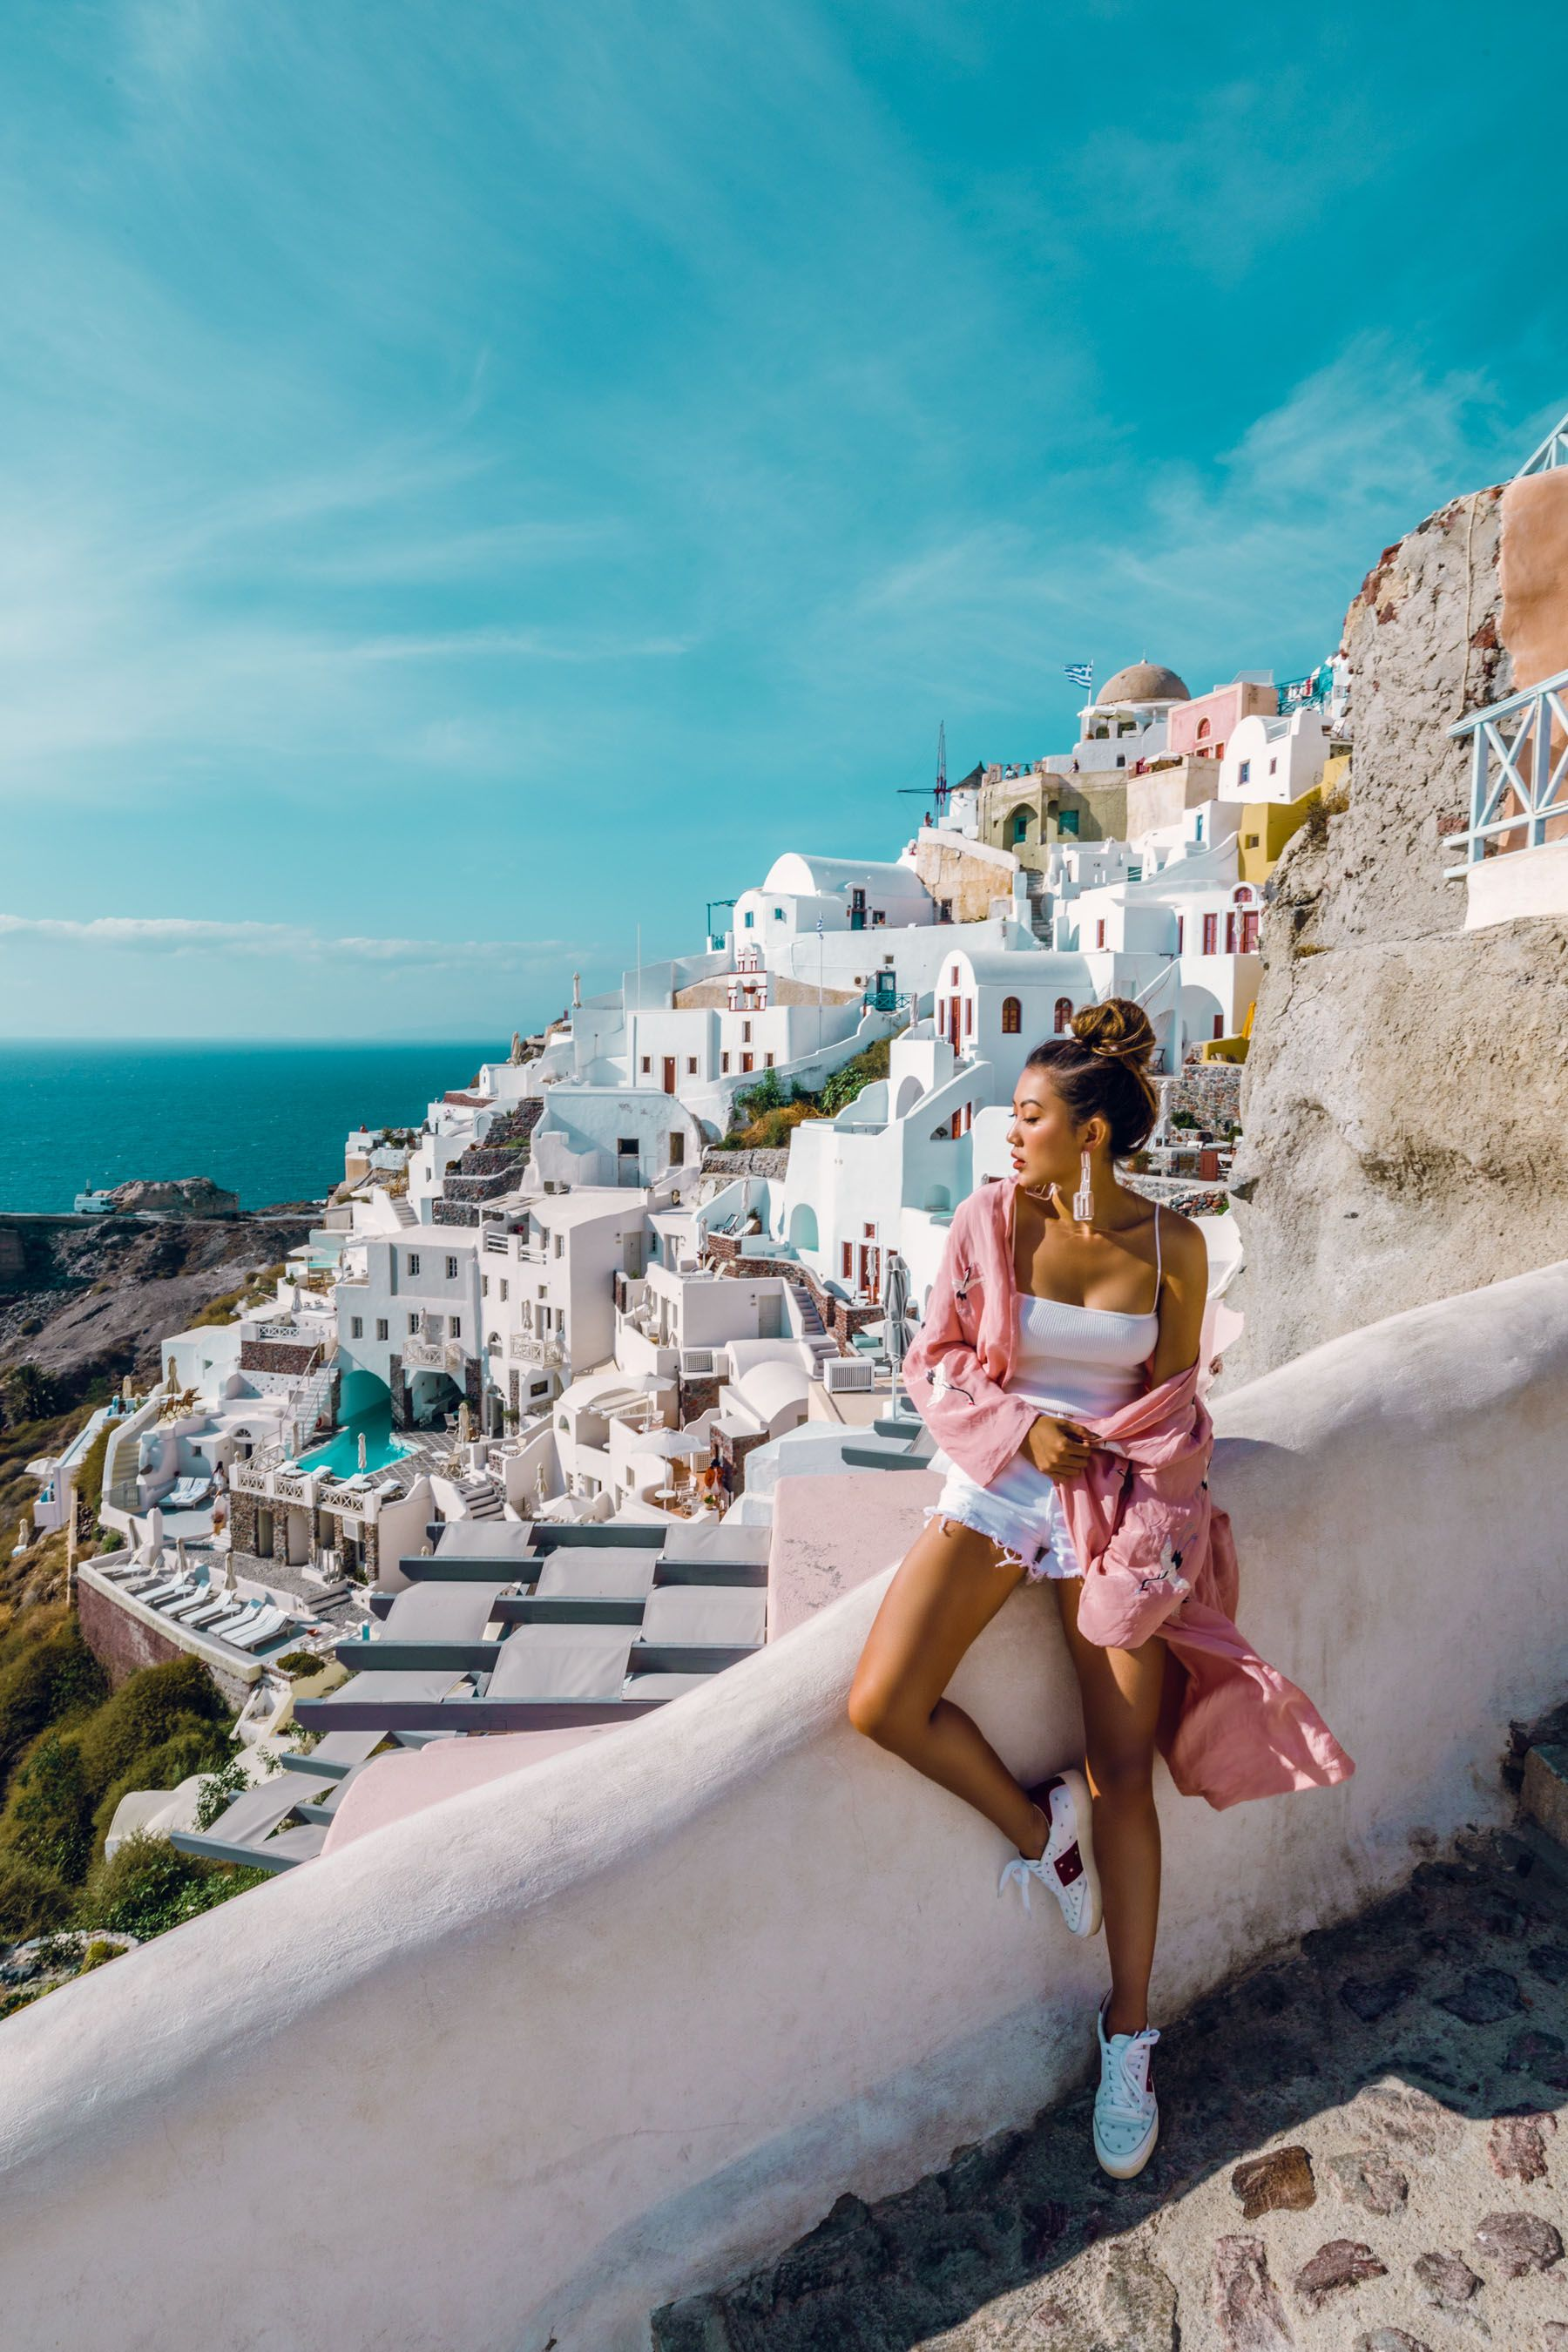 Greece Travel Guide The Secrets Of Mykonos Santorini Notjessfashion In 2020 Santorini Travel Greece Travel Guide Greece Travel